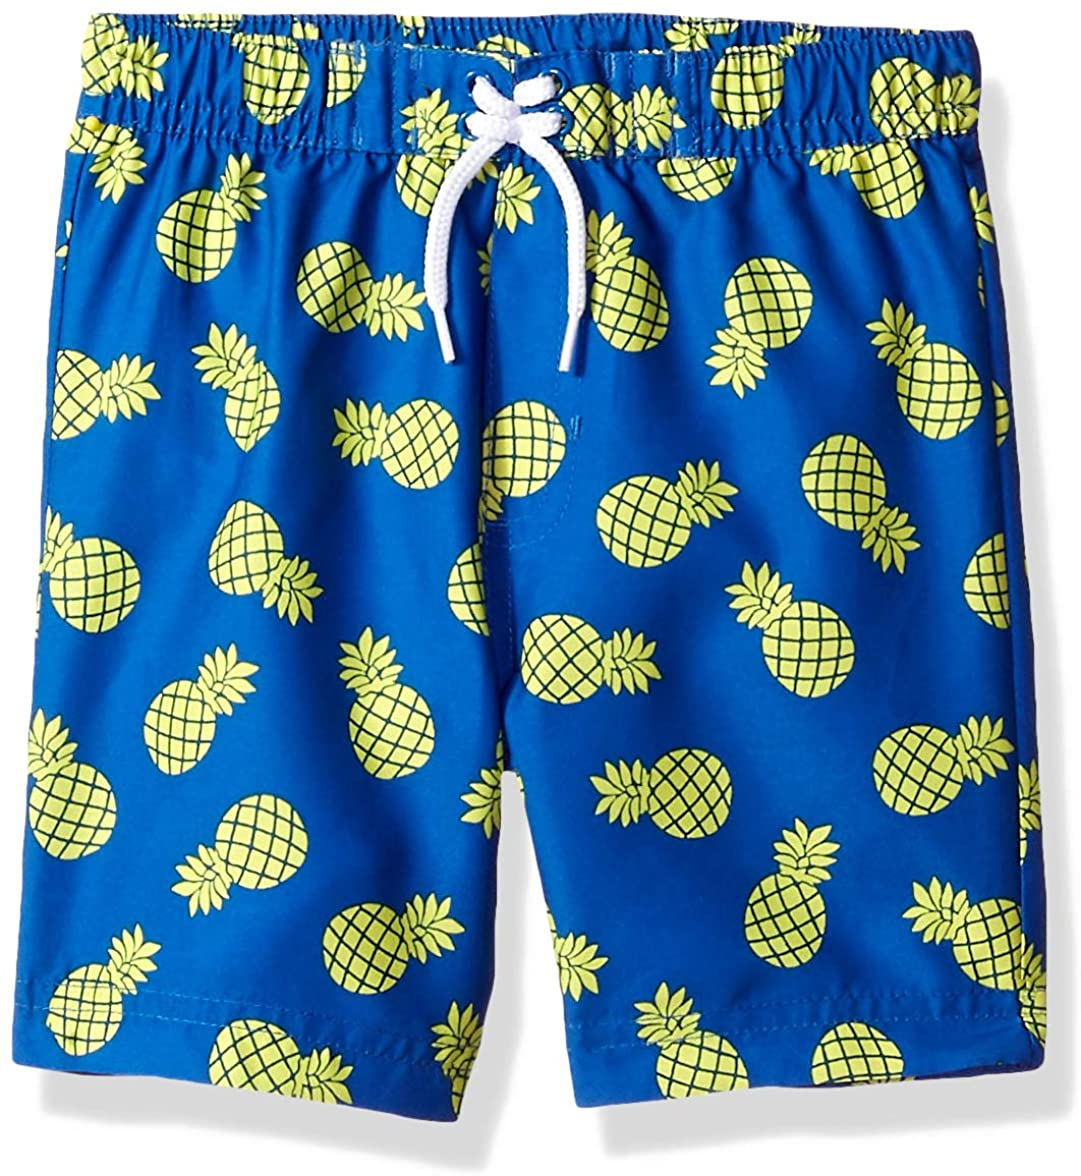 Little Me Children's Apparel Baby and Toddler Boys Swim Trunks